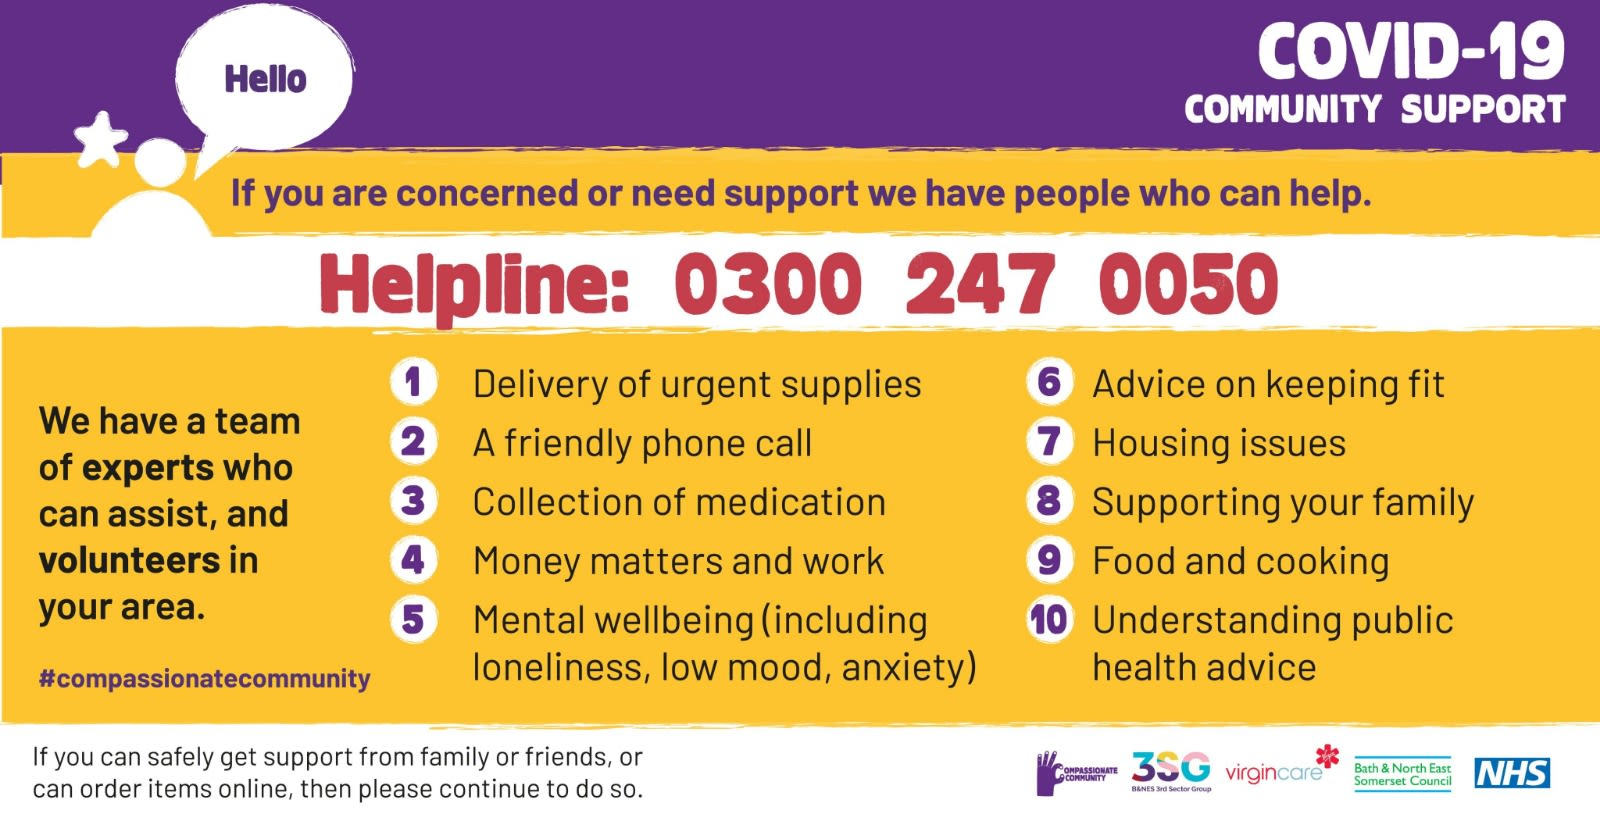 A Covid-19 Community support poster.  Helpline 03002470050  We have a team of experts who can assist, and volunteers in your area